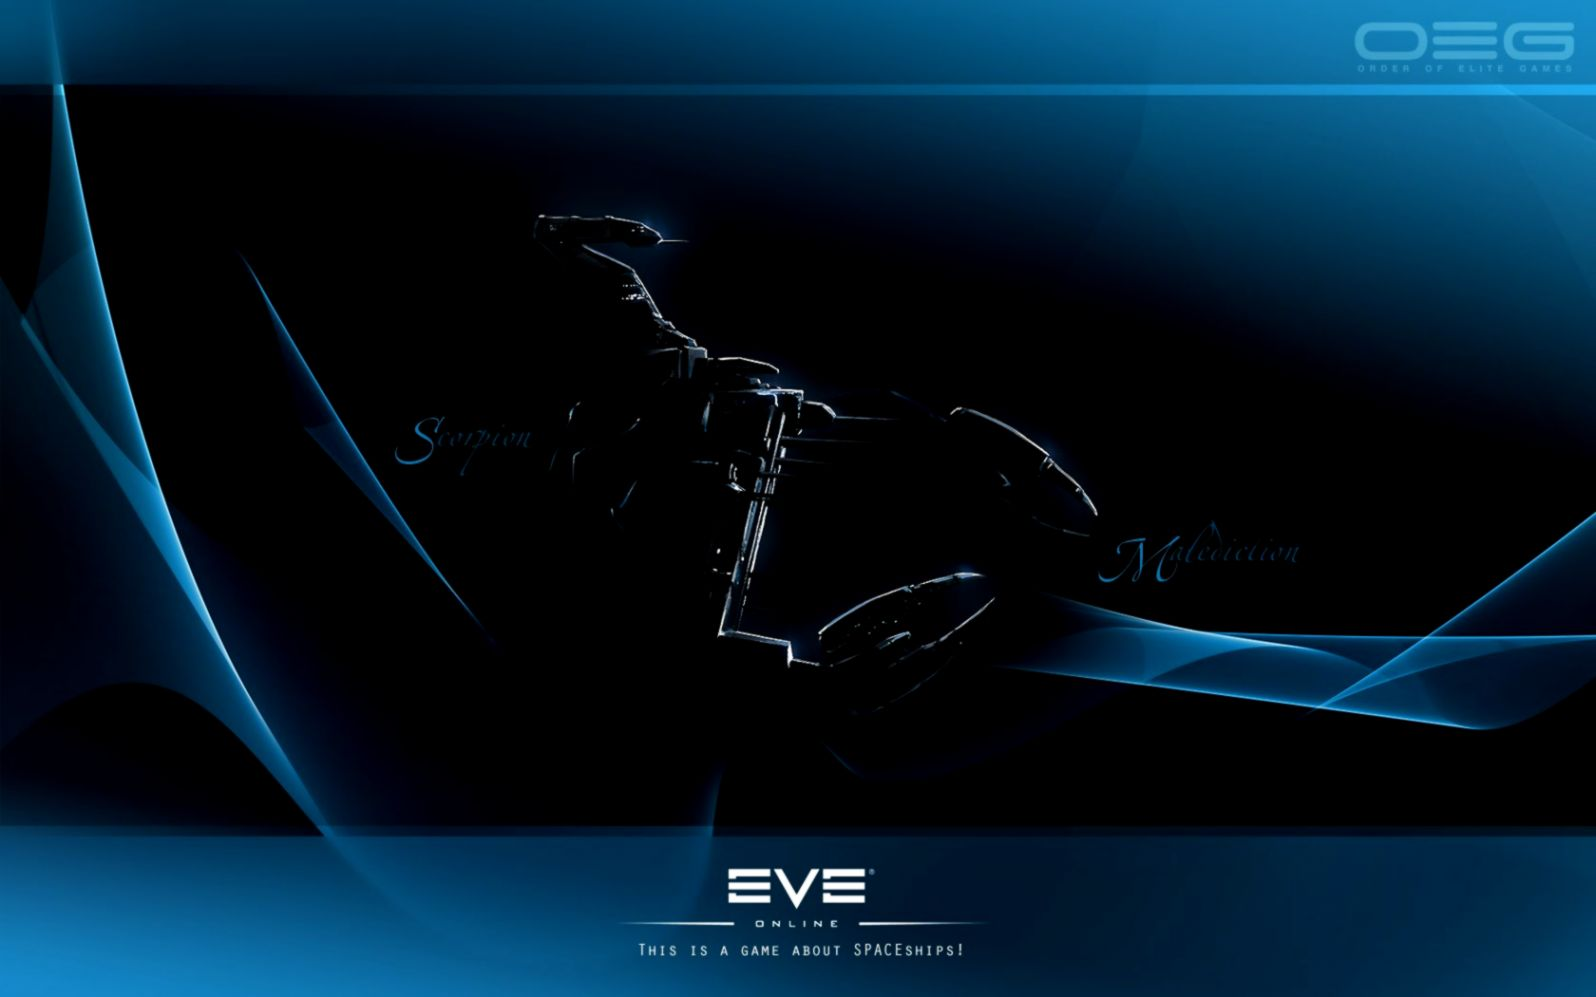 Eve Online Wallpapers Wallpapers PC 1596x997